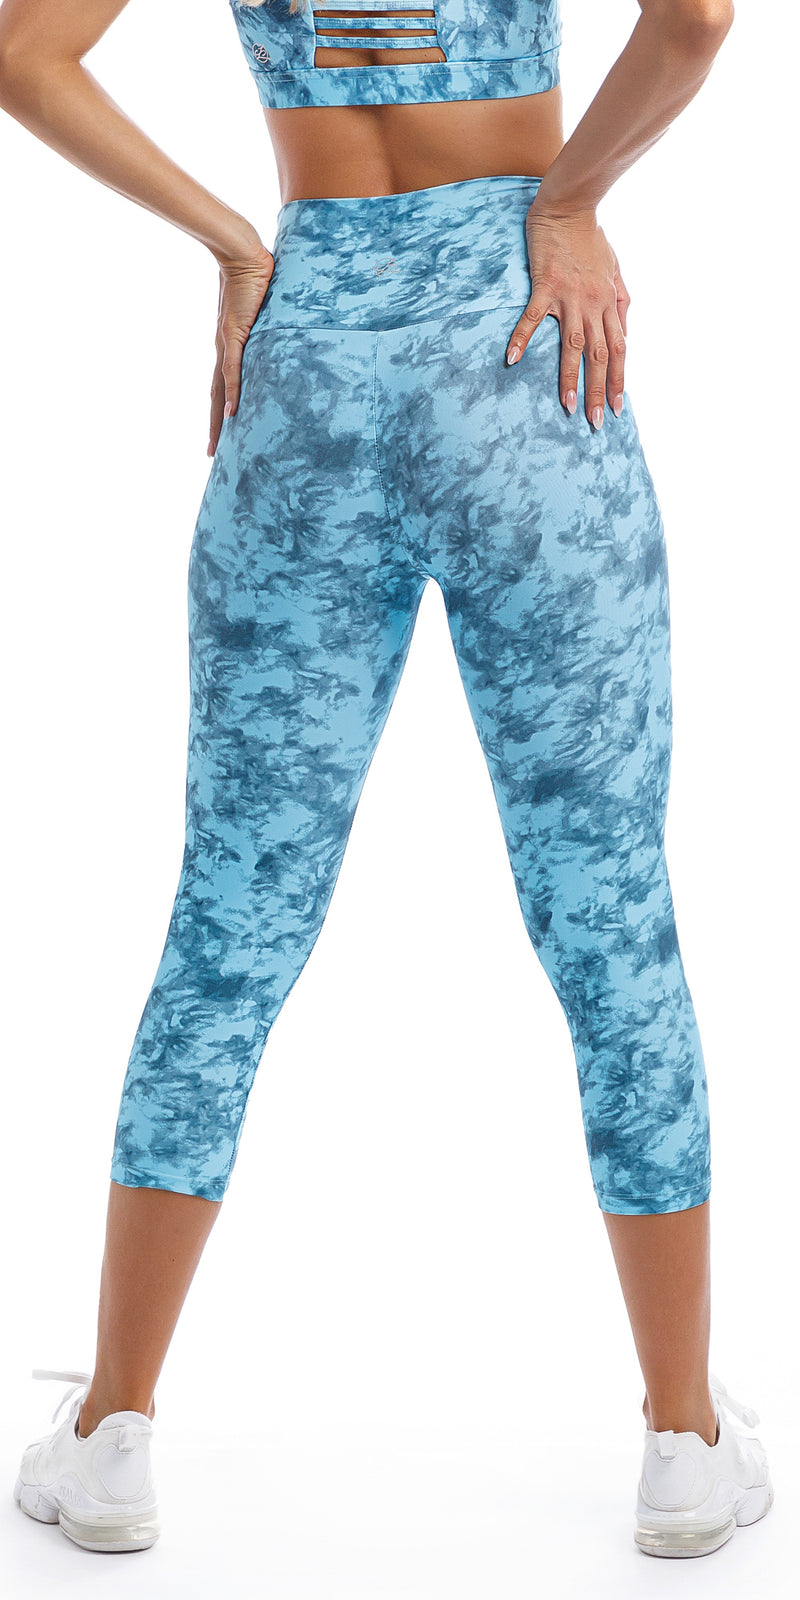 Rear View: Girl with hands on hips wearing blue tie dye blue crush print ultra high waist capri leggings & matching racer back bra